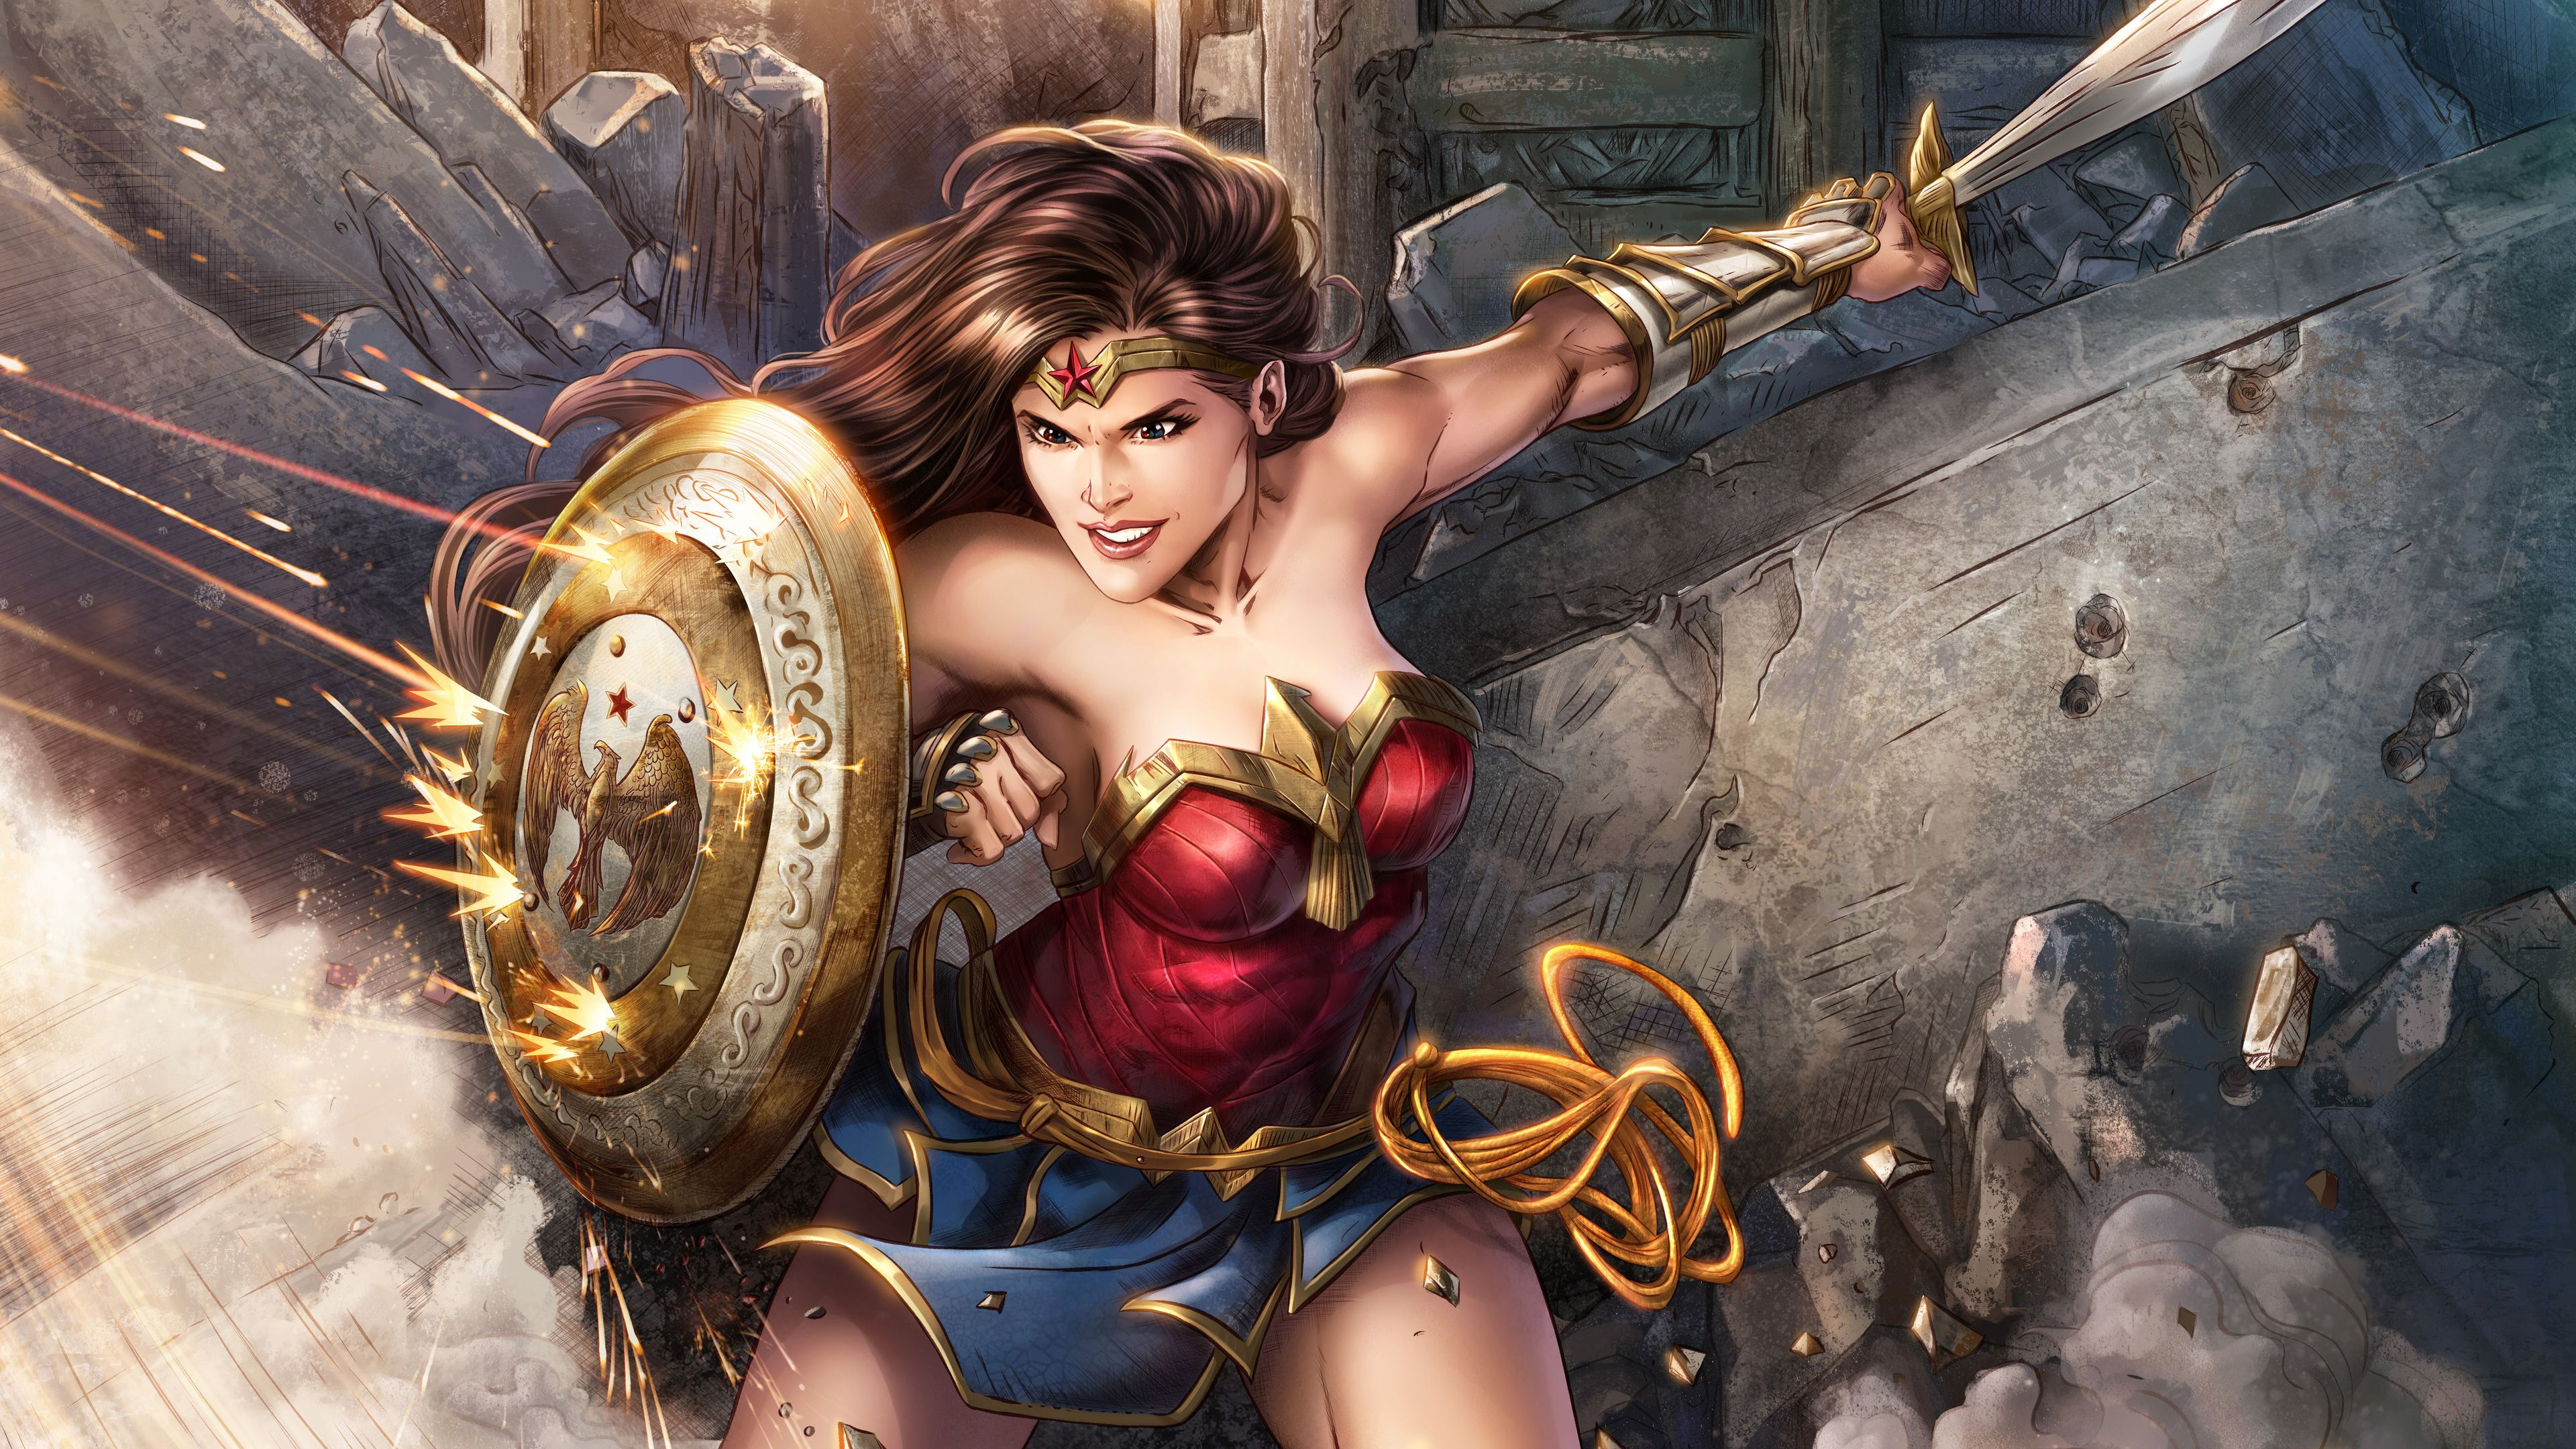 Wonder Woman 5k Digital Artwork Wonder Woman Wallpapers Superheroes Wallpapers Hd Wallpapers Digital Art Wallpapers Digital Artwork Wonder Woman Superhero